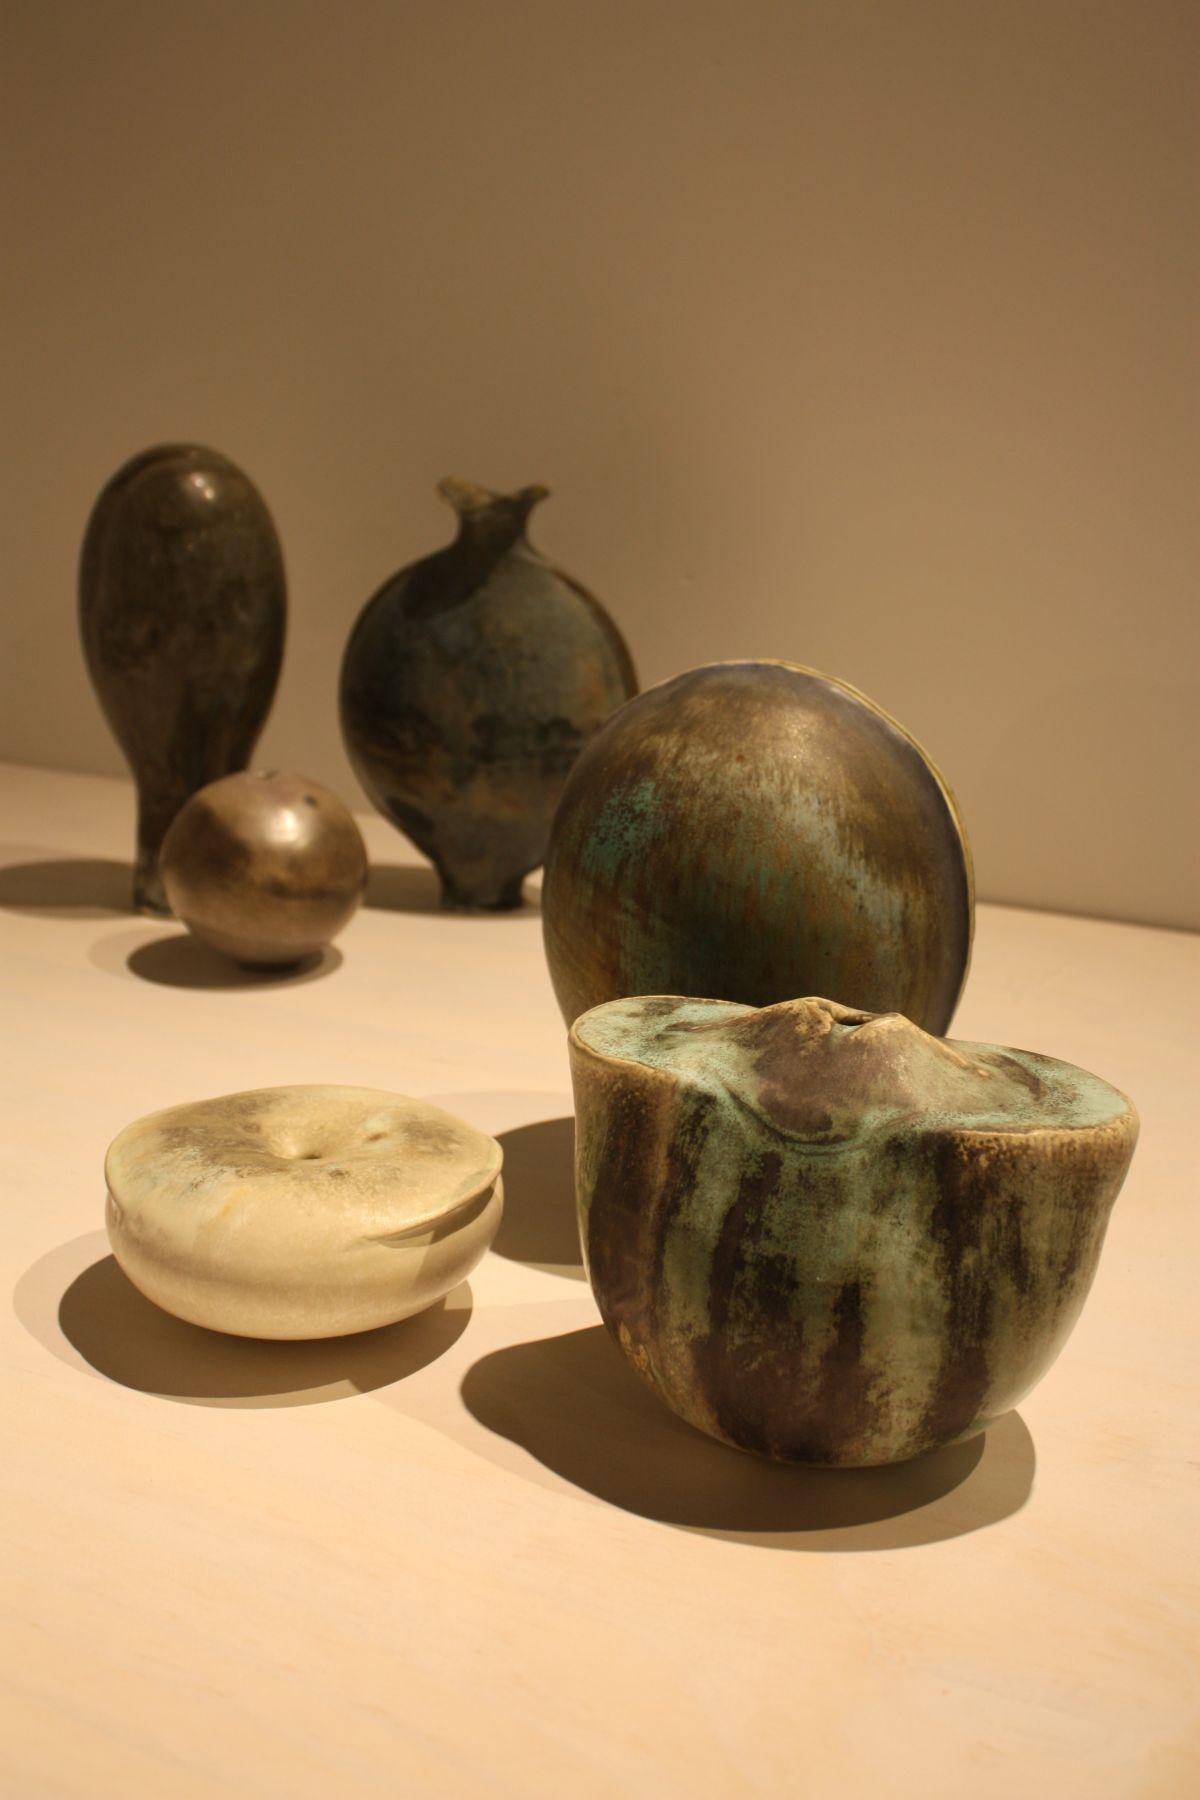 Seritella vessels